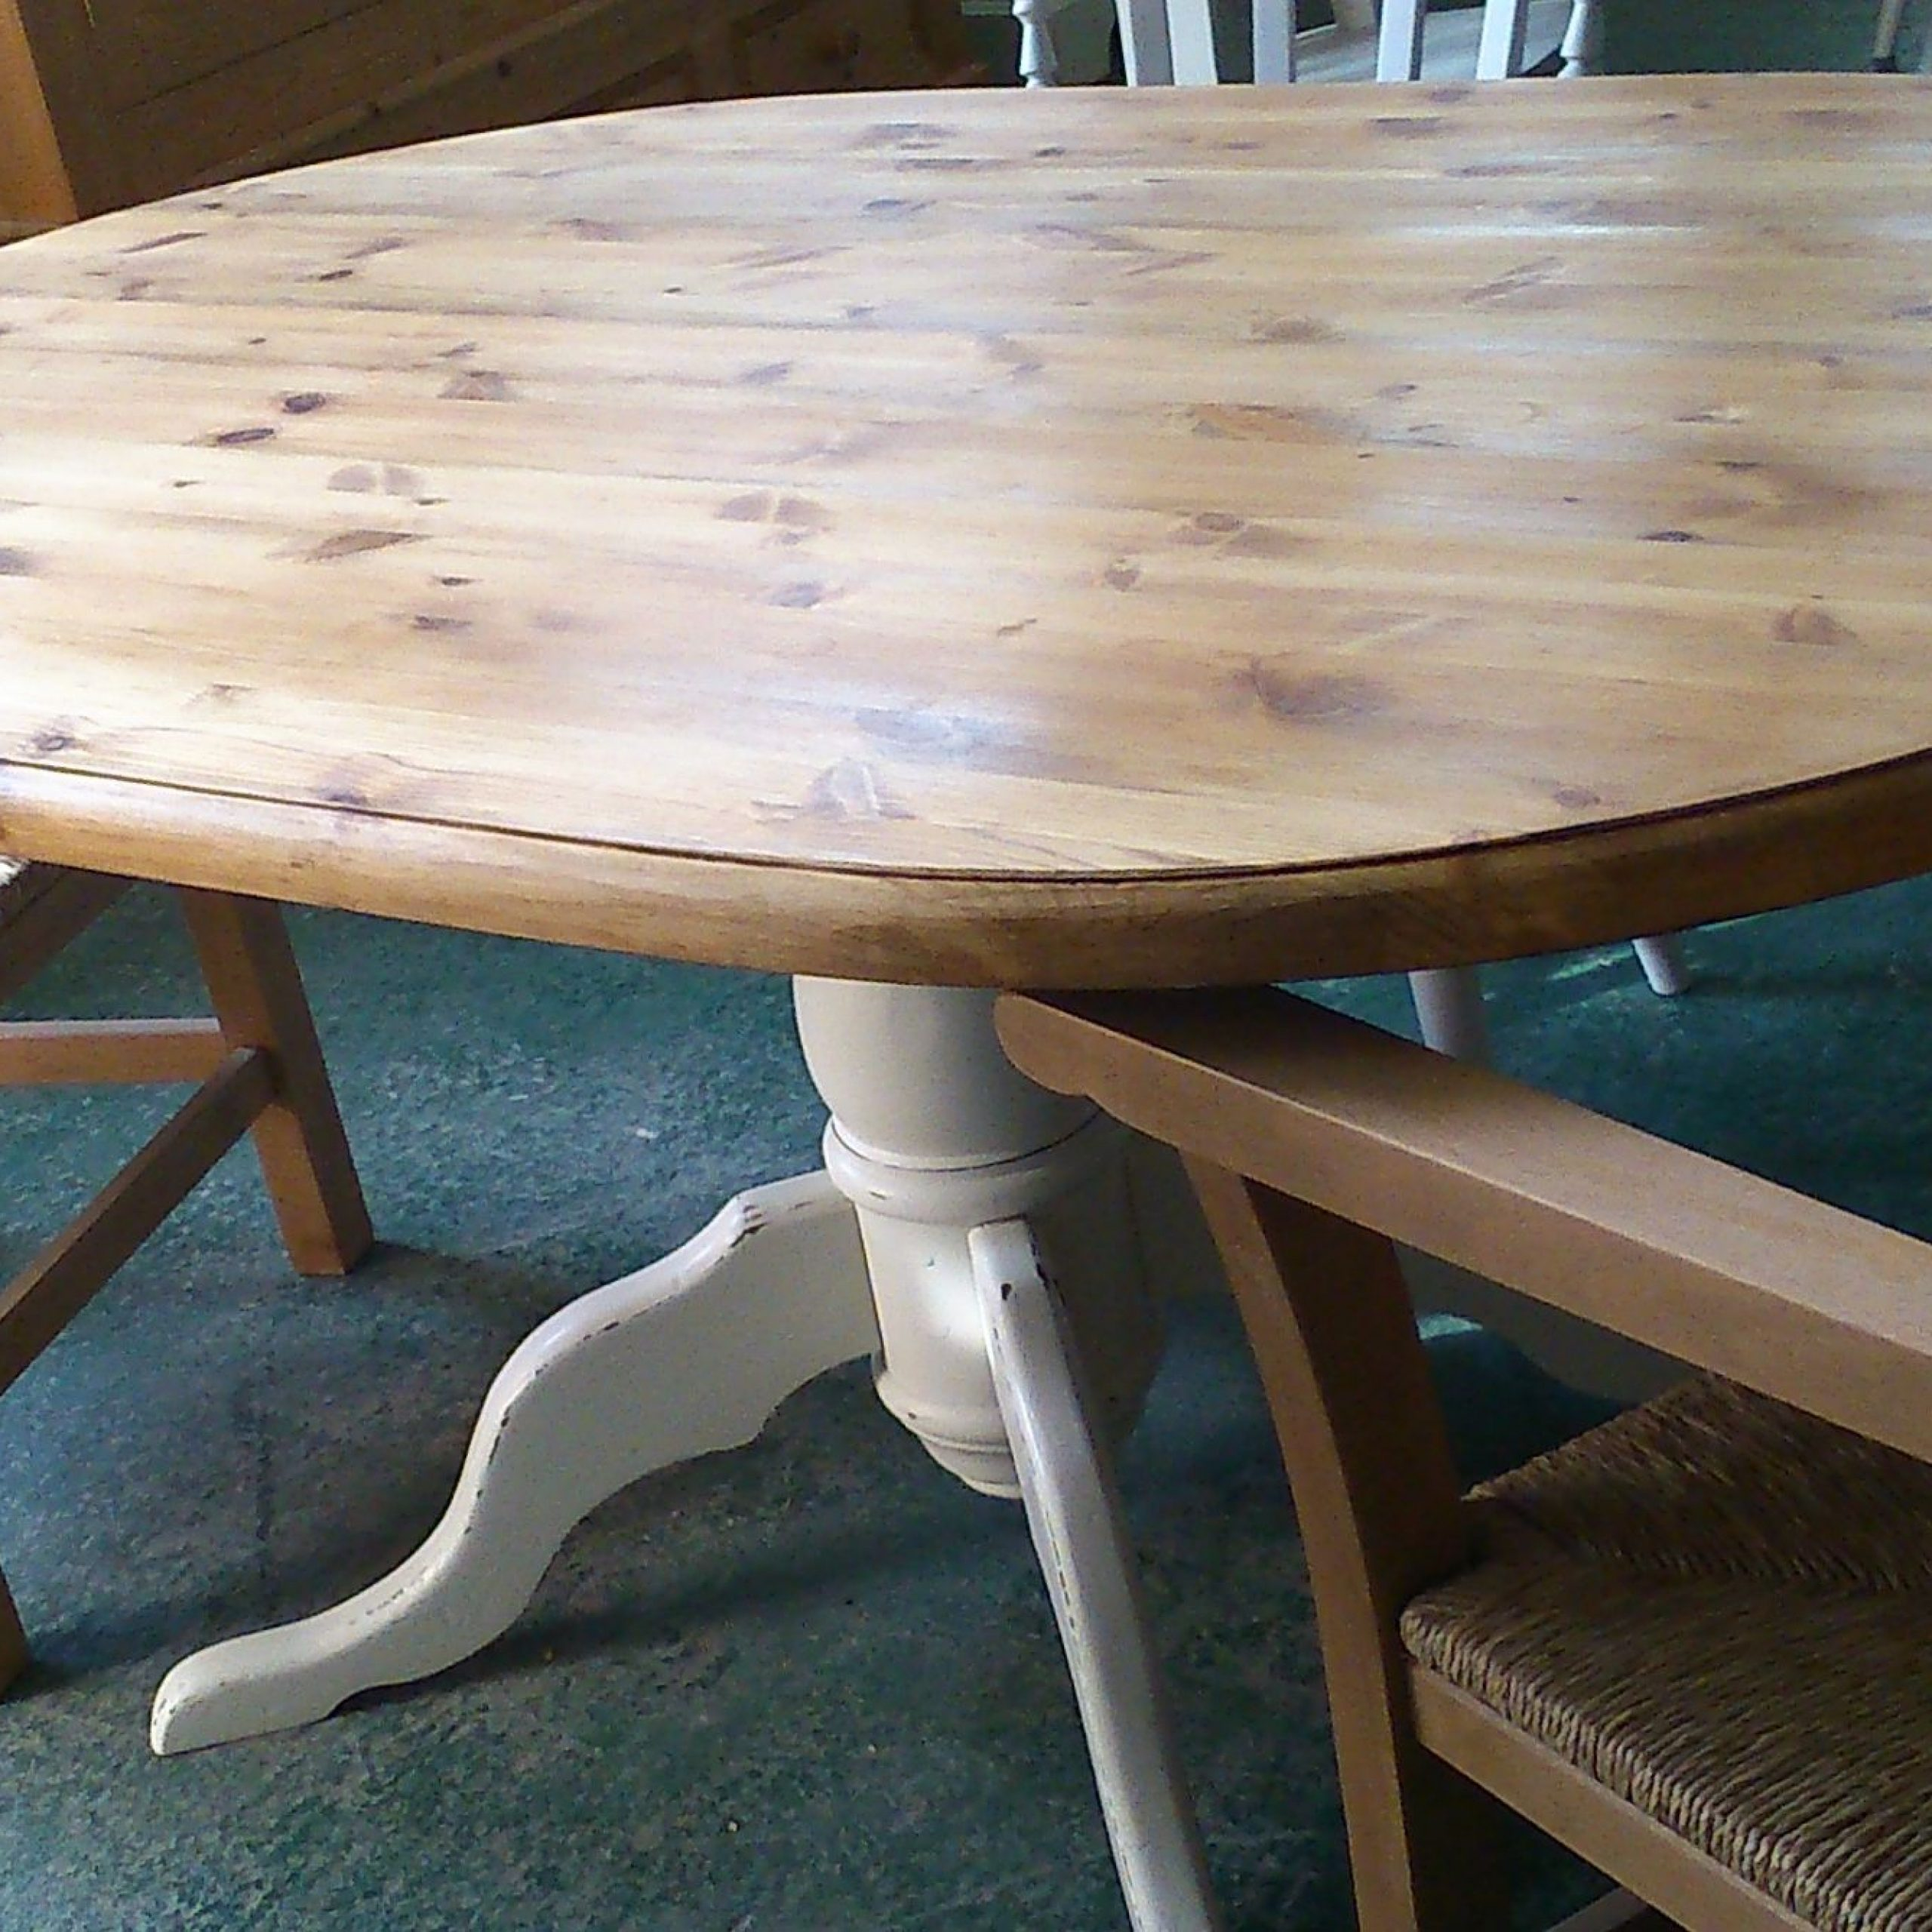 2019 Cleary Oval Dining Pedestal Tables in Oval Pine Table Base Legs Painted In Farrow & Ball 'slipper